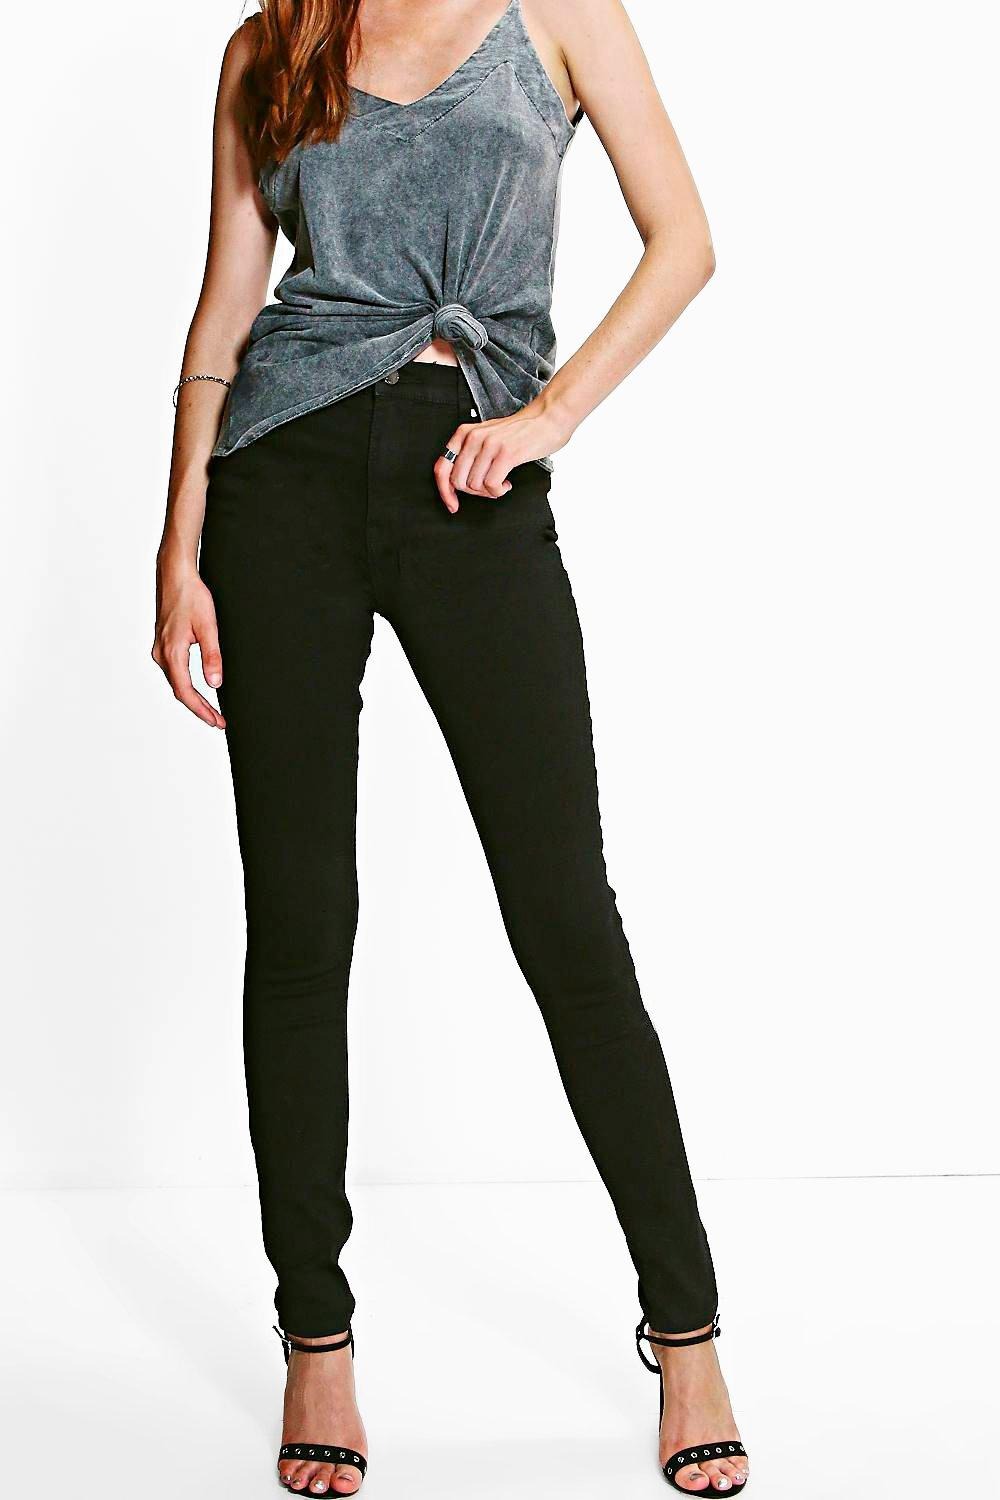 Eli Black 5-Pocket Full Length Skinny Jeans